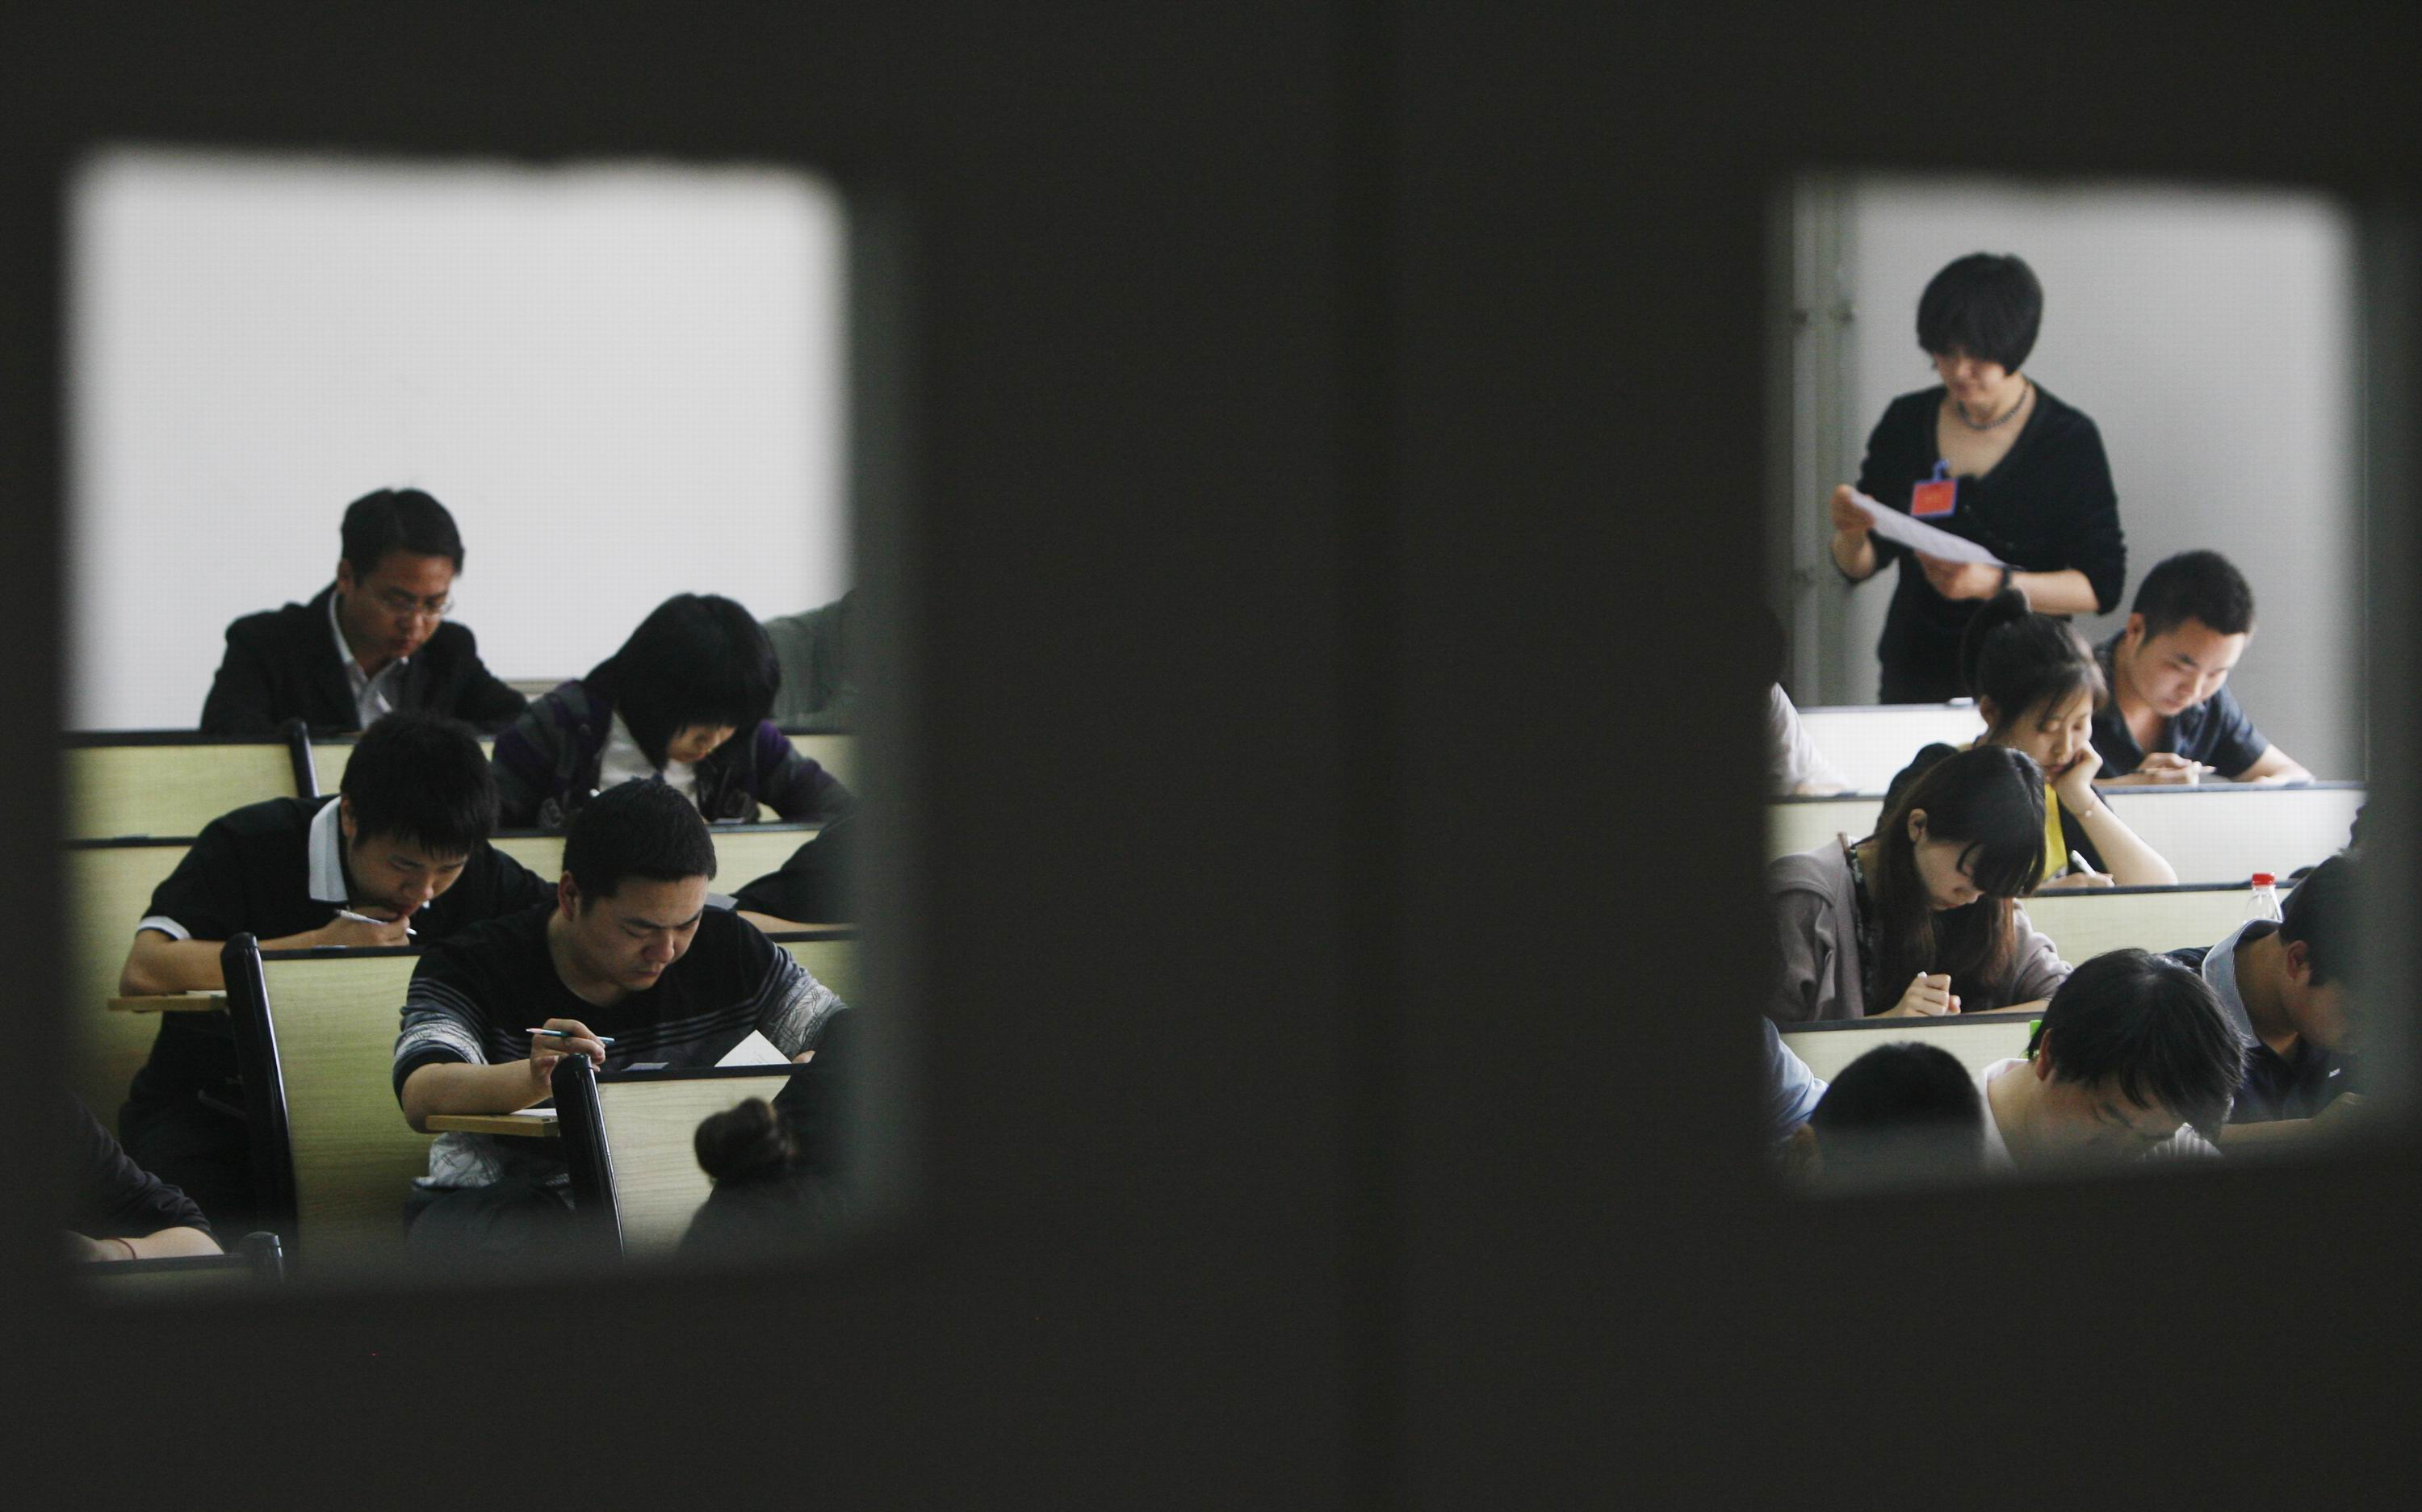 People take part in the civil service examination at Huazhong University of Science and Technology on April 24, 2011 in Wuhan, Hubei Province of China. (Photo by VCG/VCG via Getty Images)